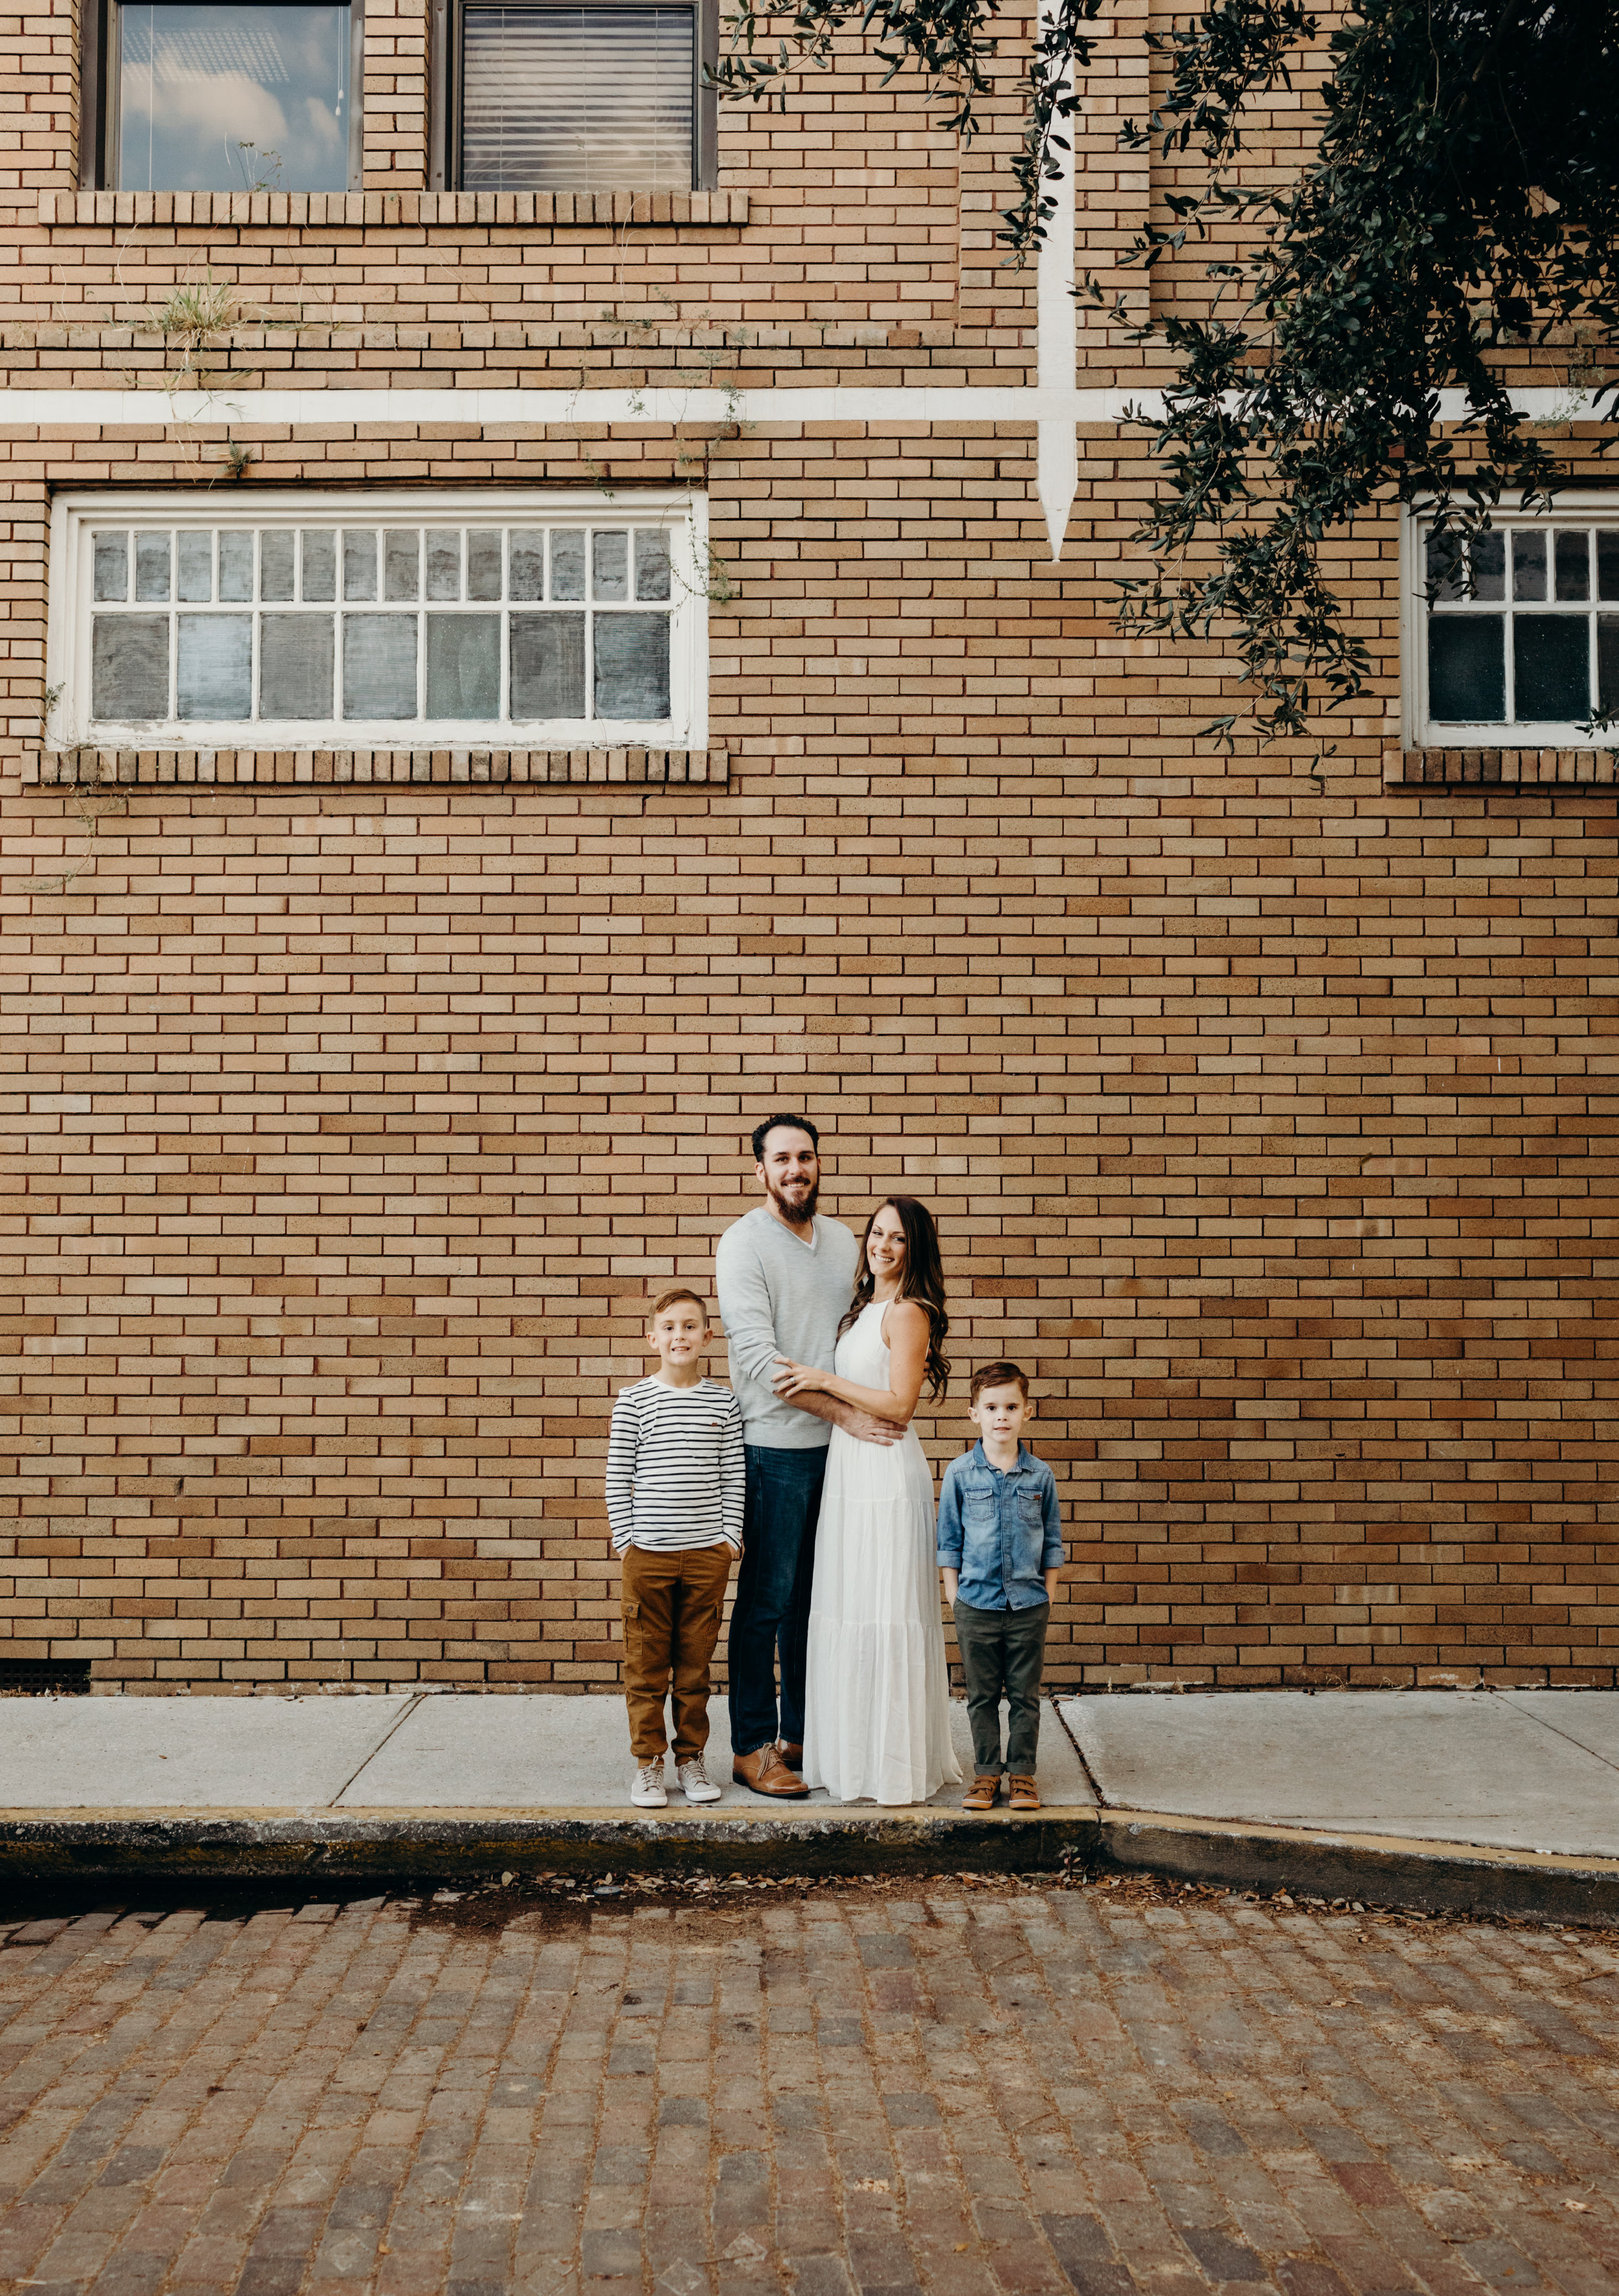 Rosa Family   Lifestyle Session   Photographed by Vanessa Boy   Vanessaboy.com (103 of 2).jpg